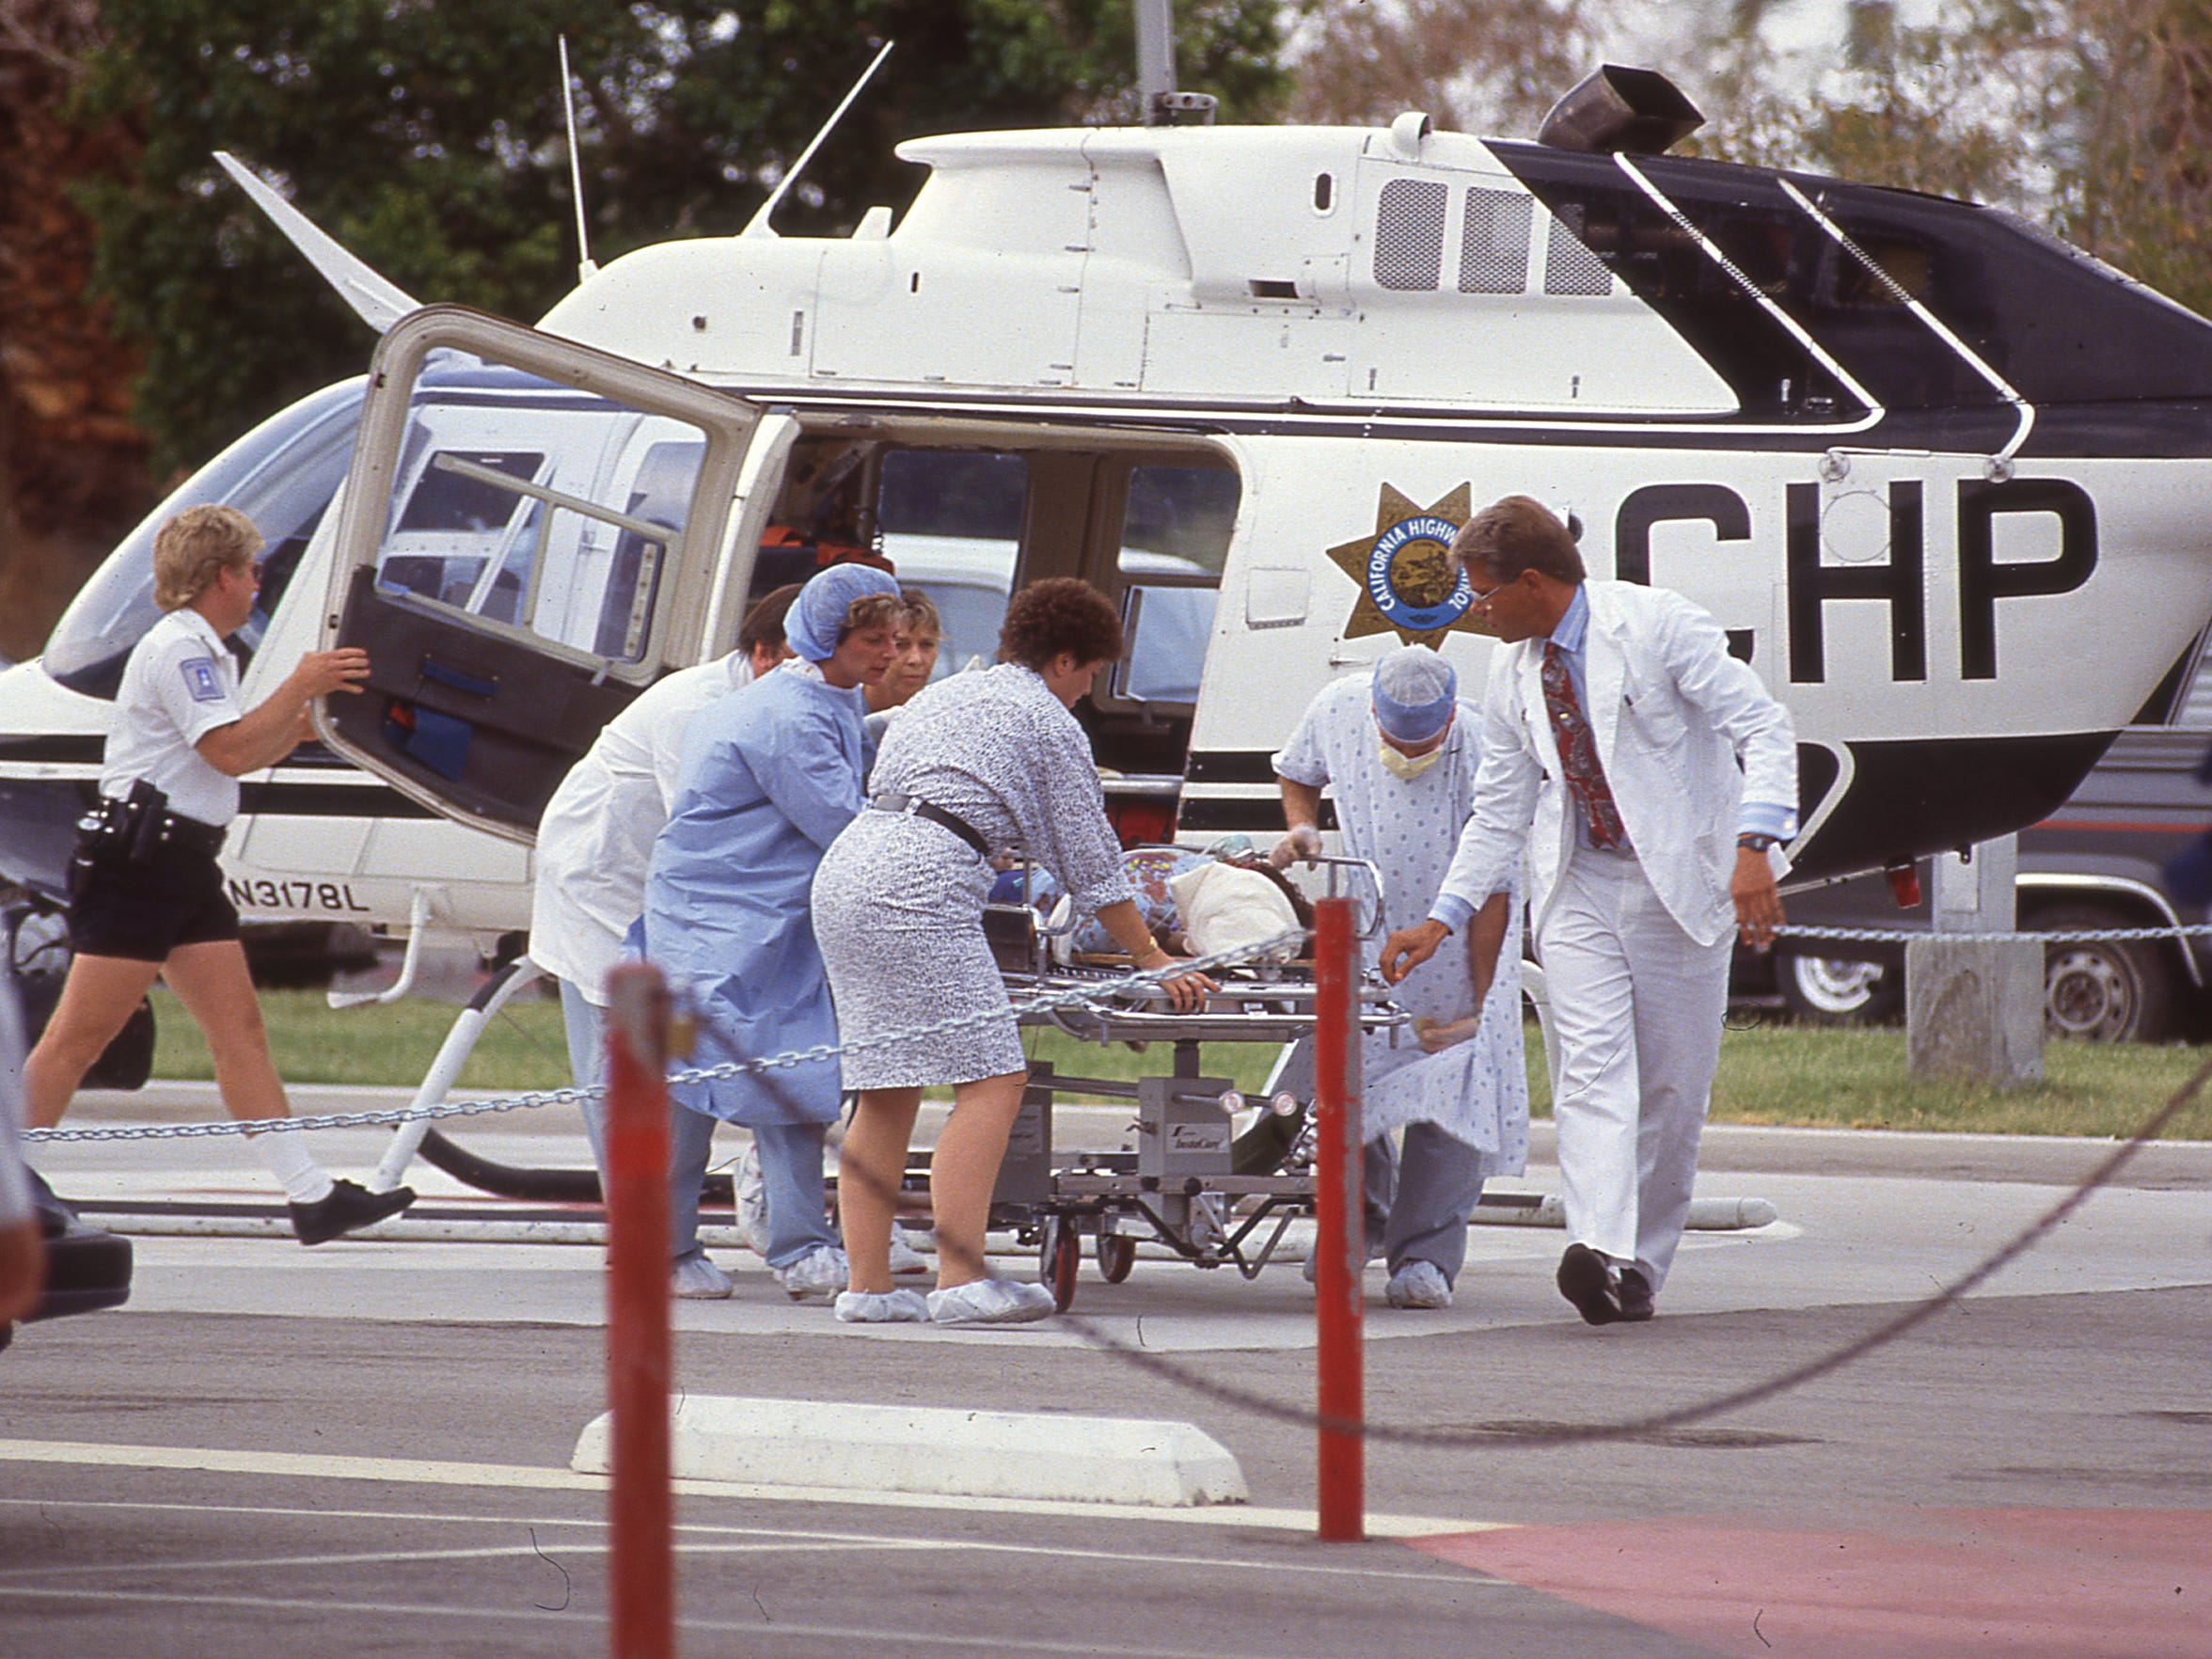 An injured Girl Scout arrives via CHP helicopter at